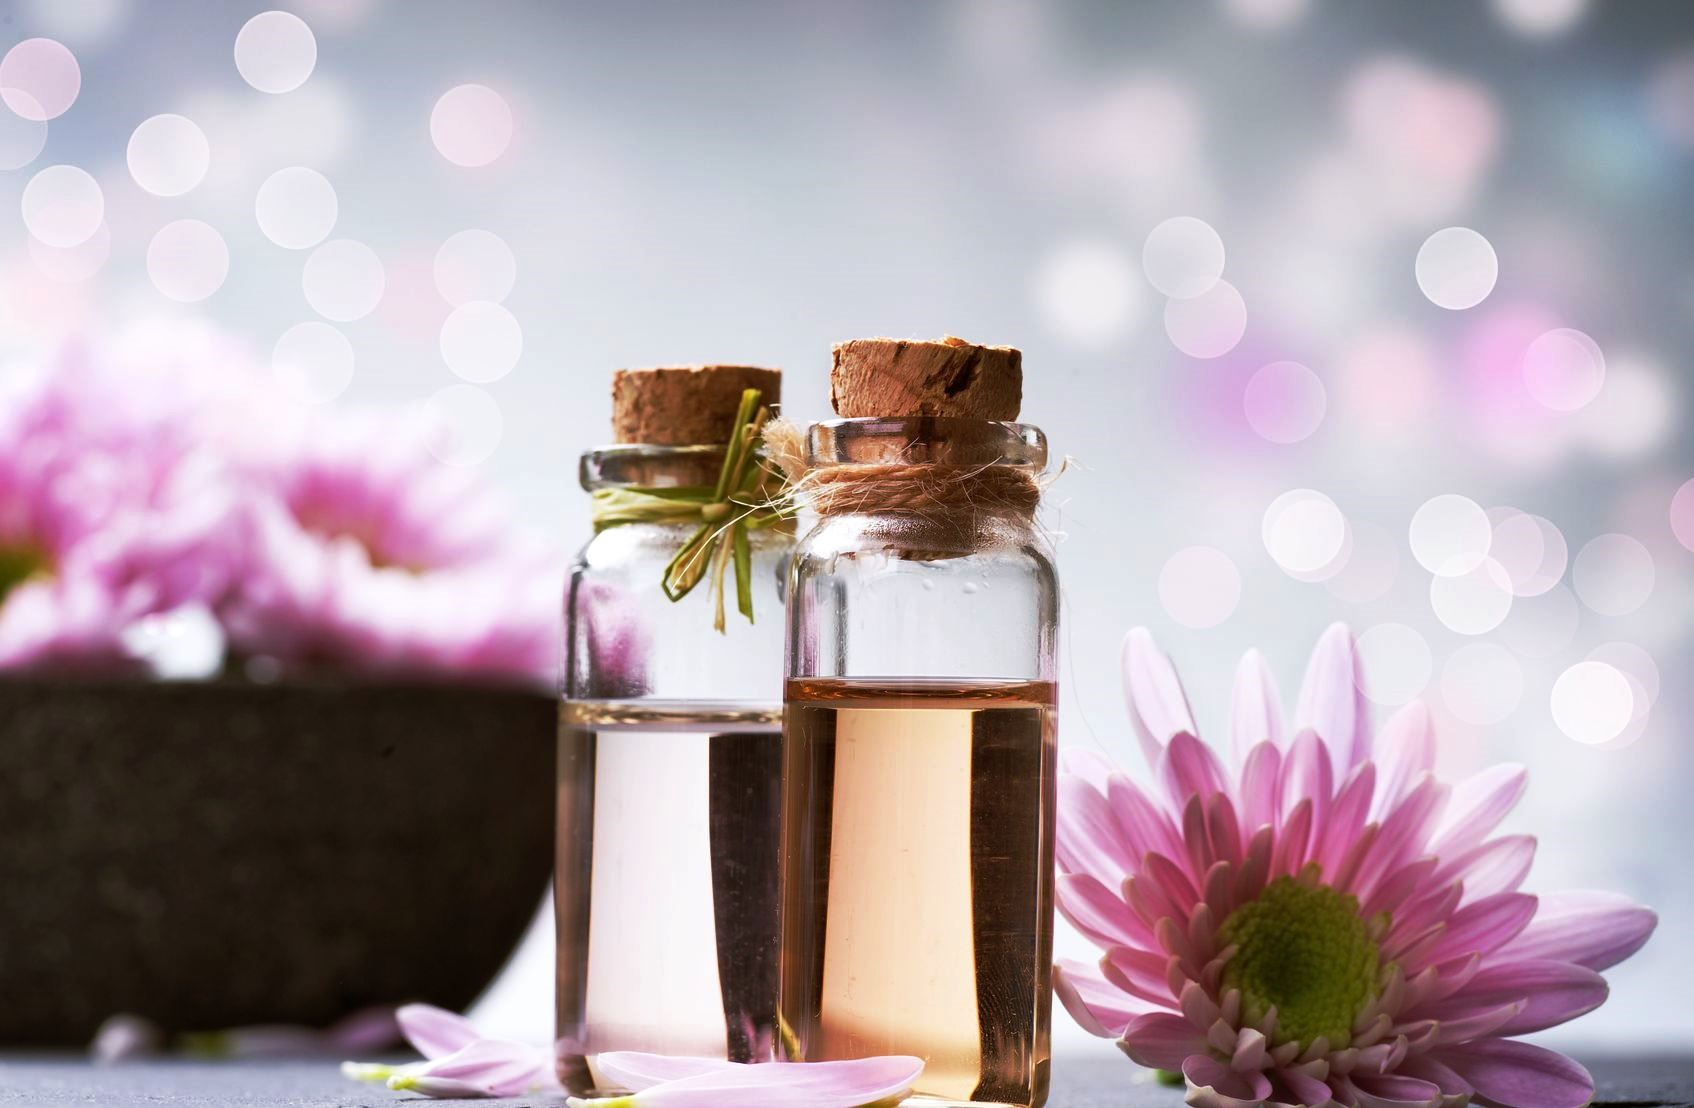 DAILY USES OF ESSENTIAL OILS